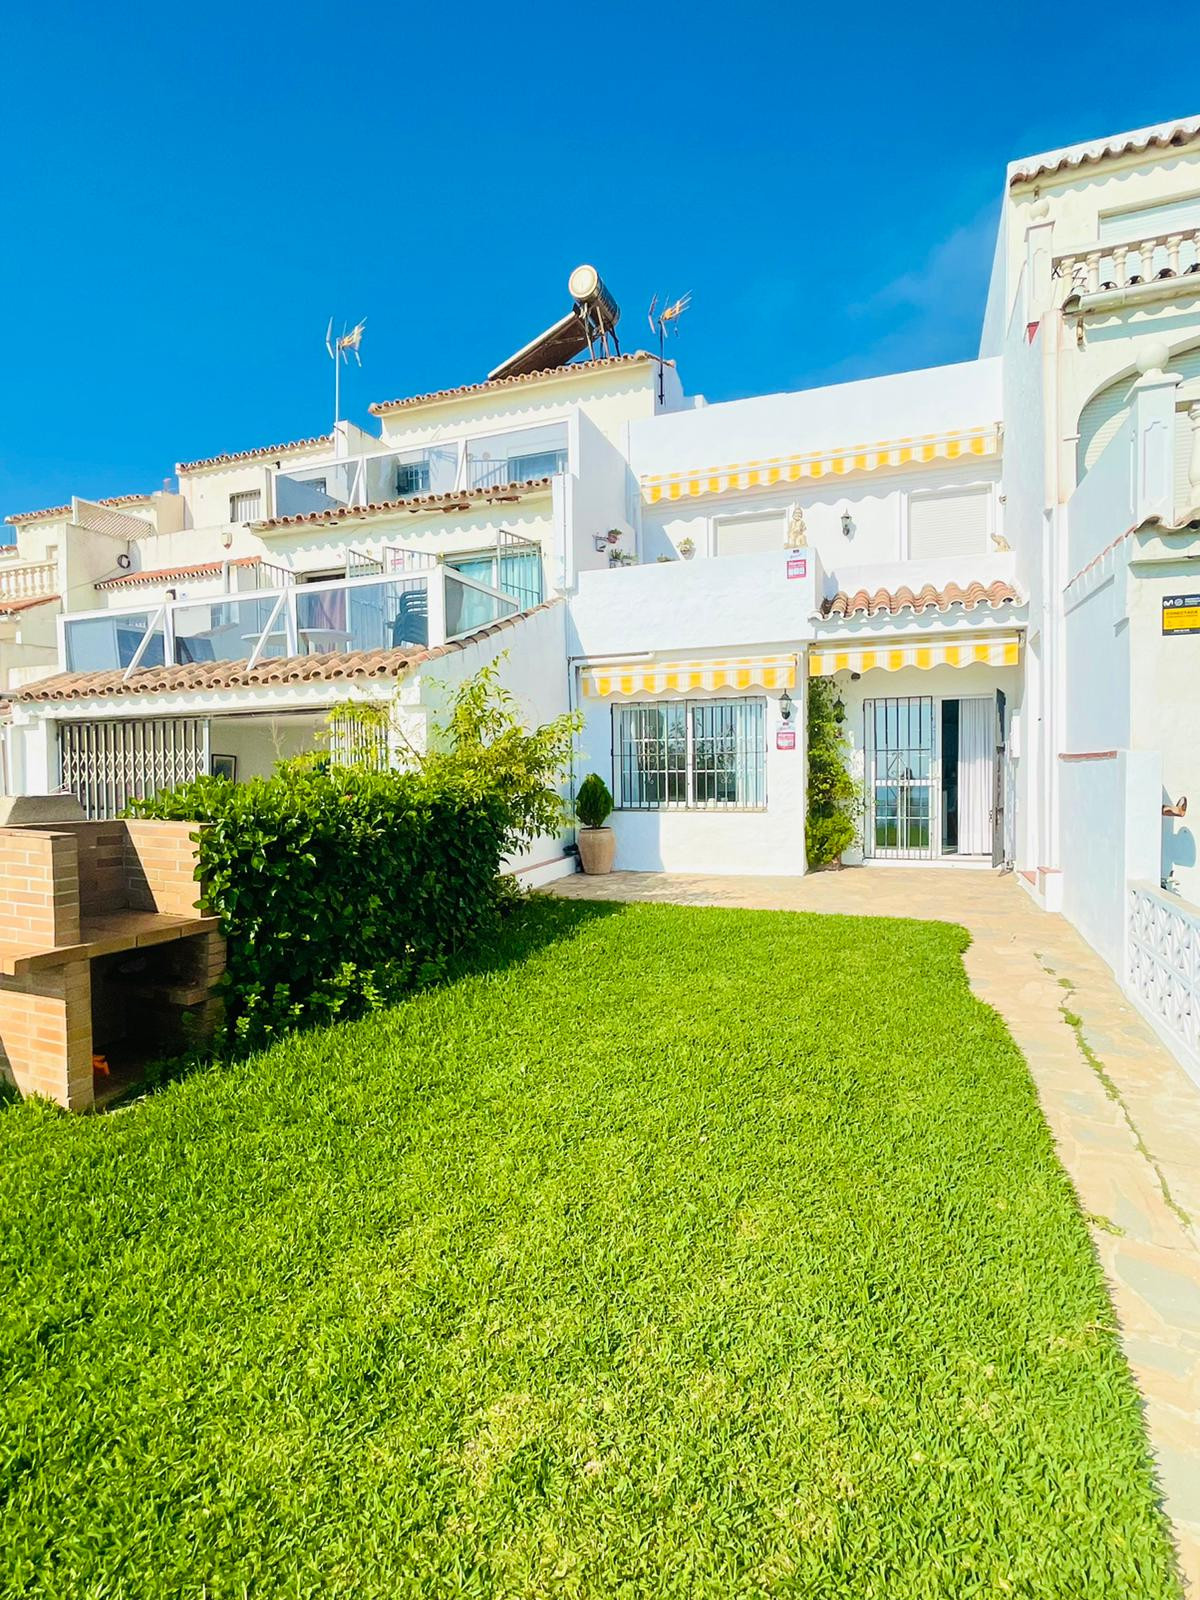 Townhouse  Terraced for sale   in Manilva